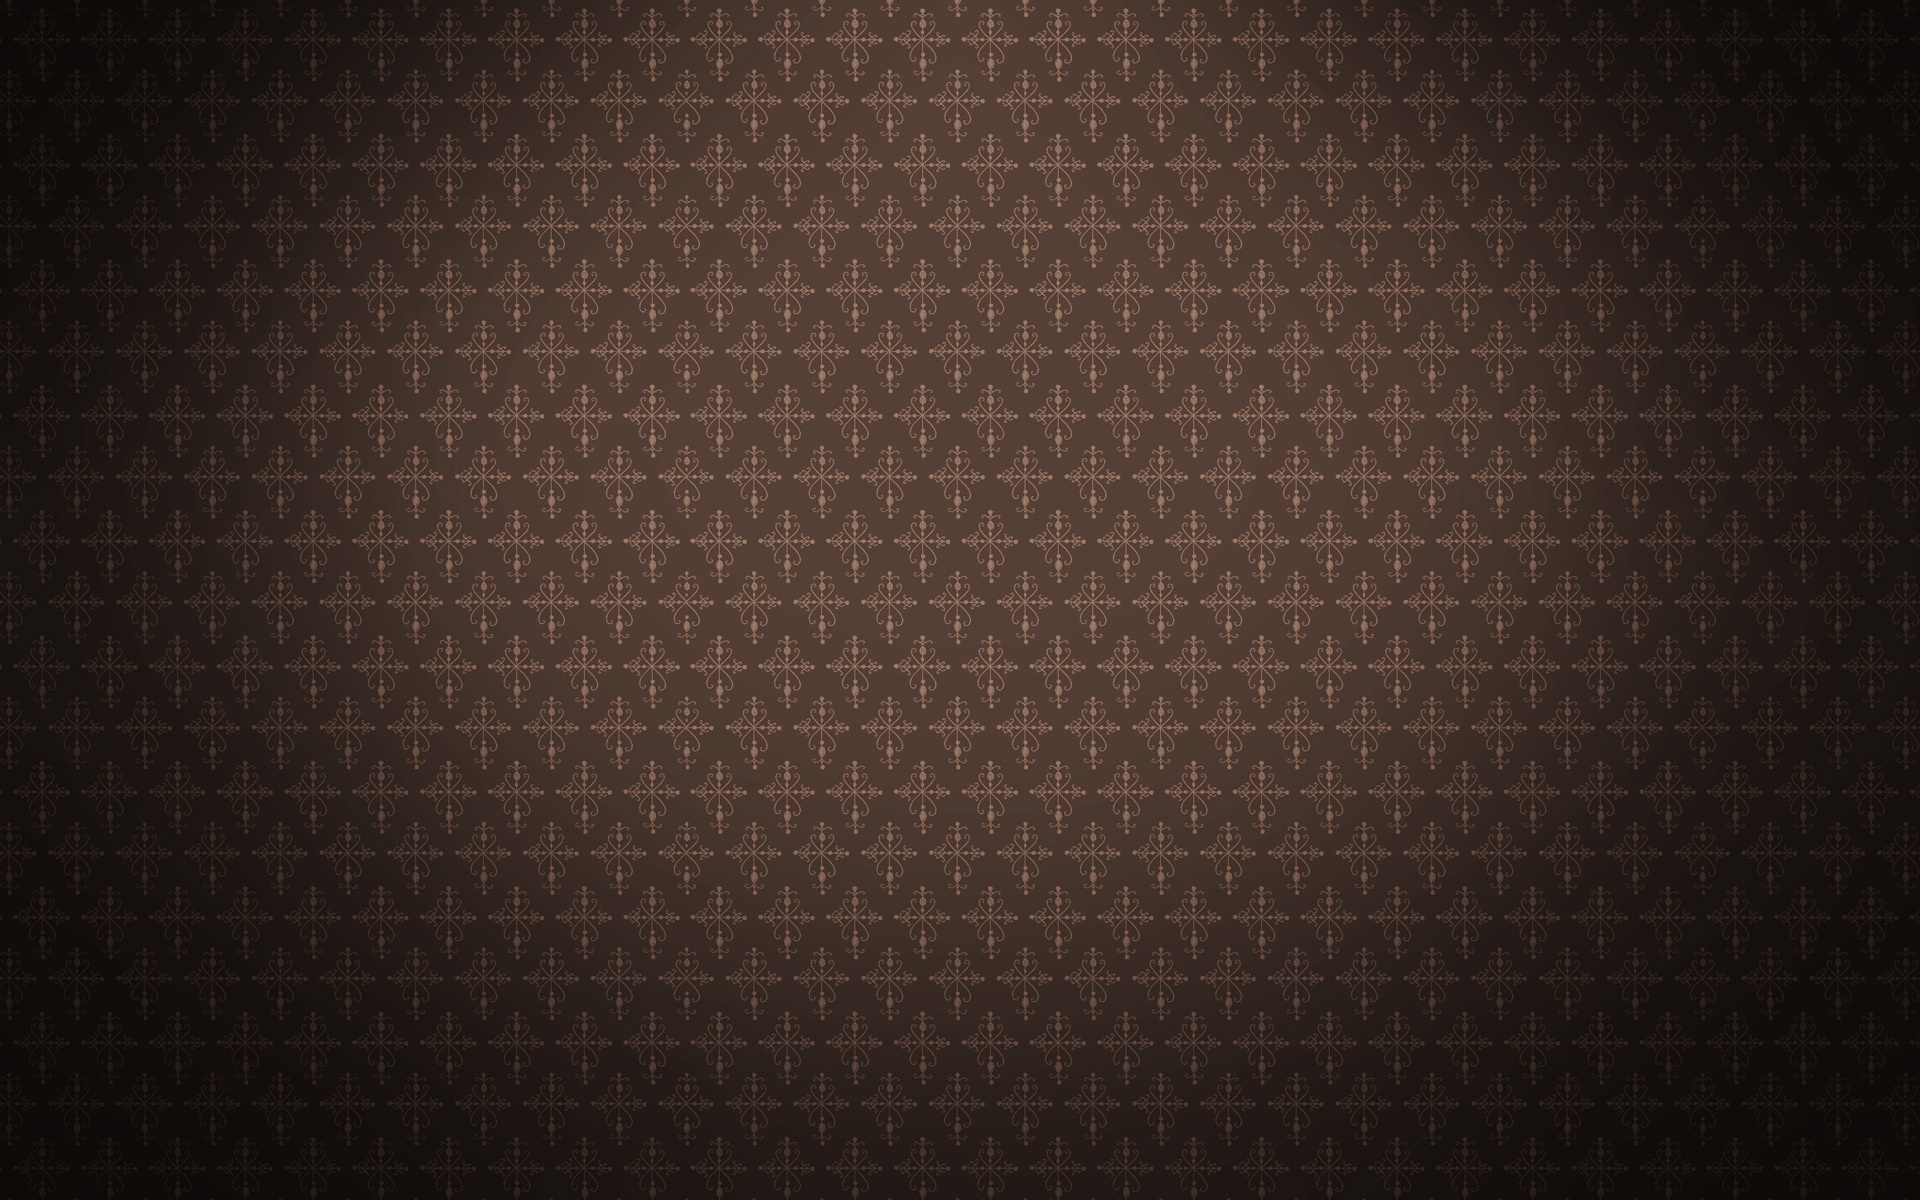 Brown Vintage Background wallpaper   690910 1920x1200